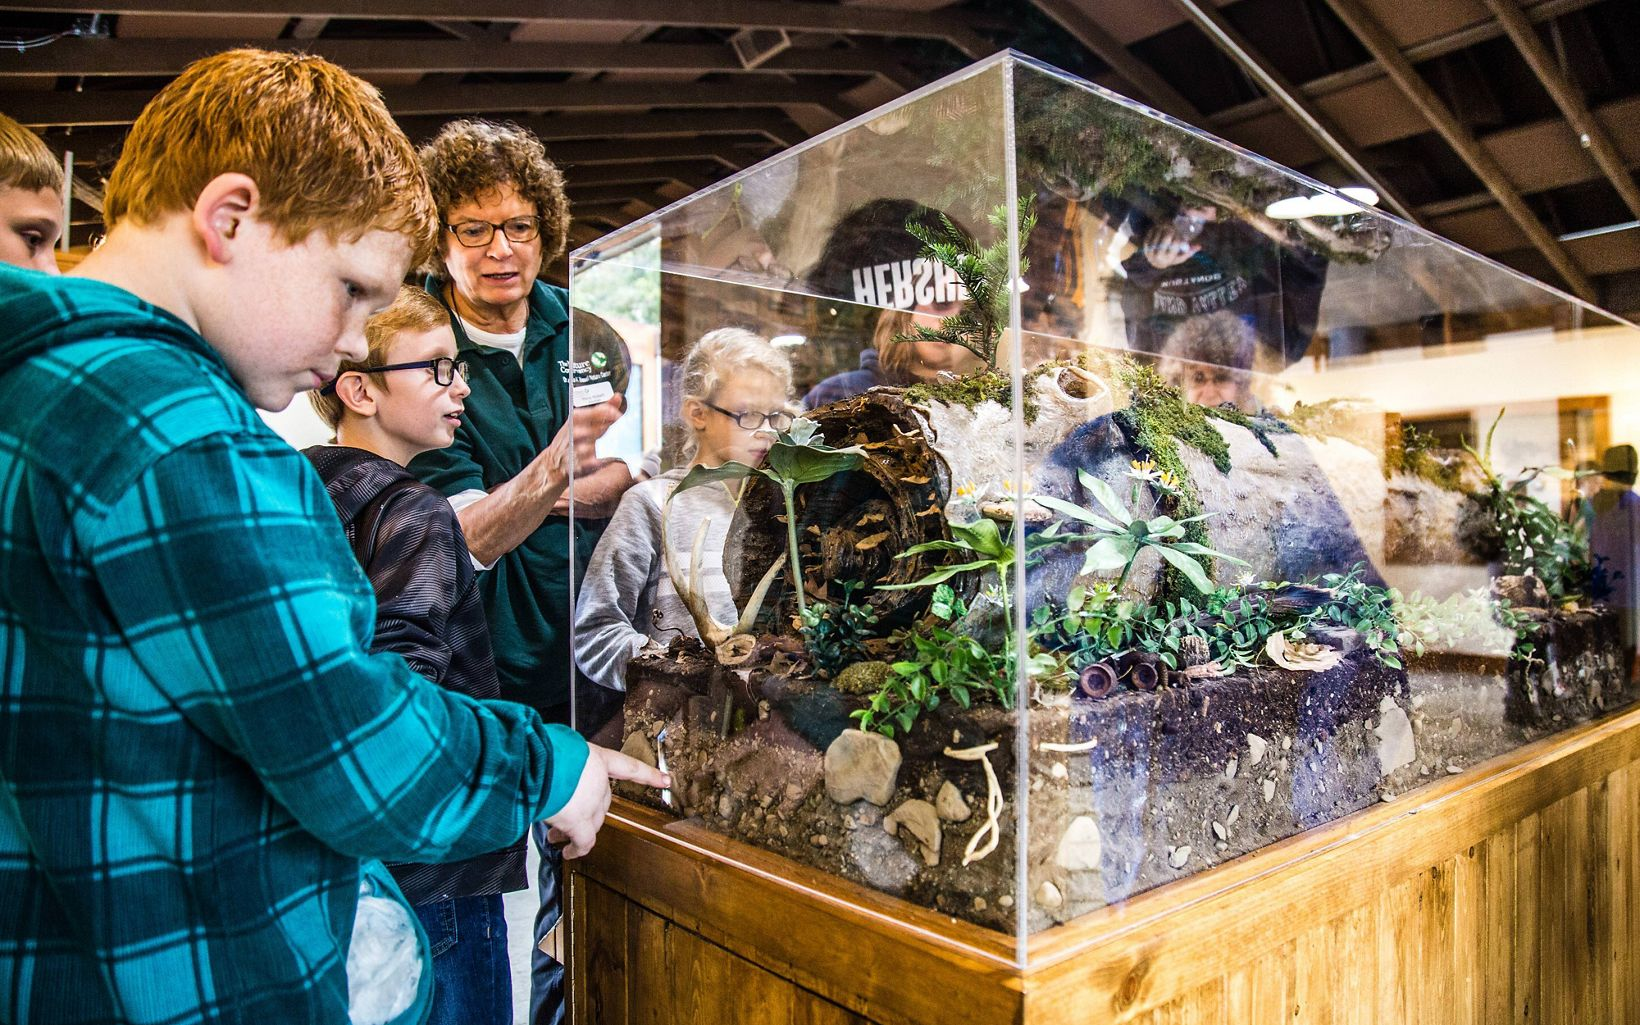 Boy with red hair and blue plaid shirt looks into a glass terrarium that shows a rotting log and a look at the soil underneath it, along with organisms that like that habitat.